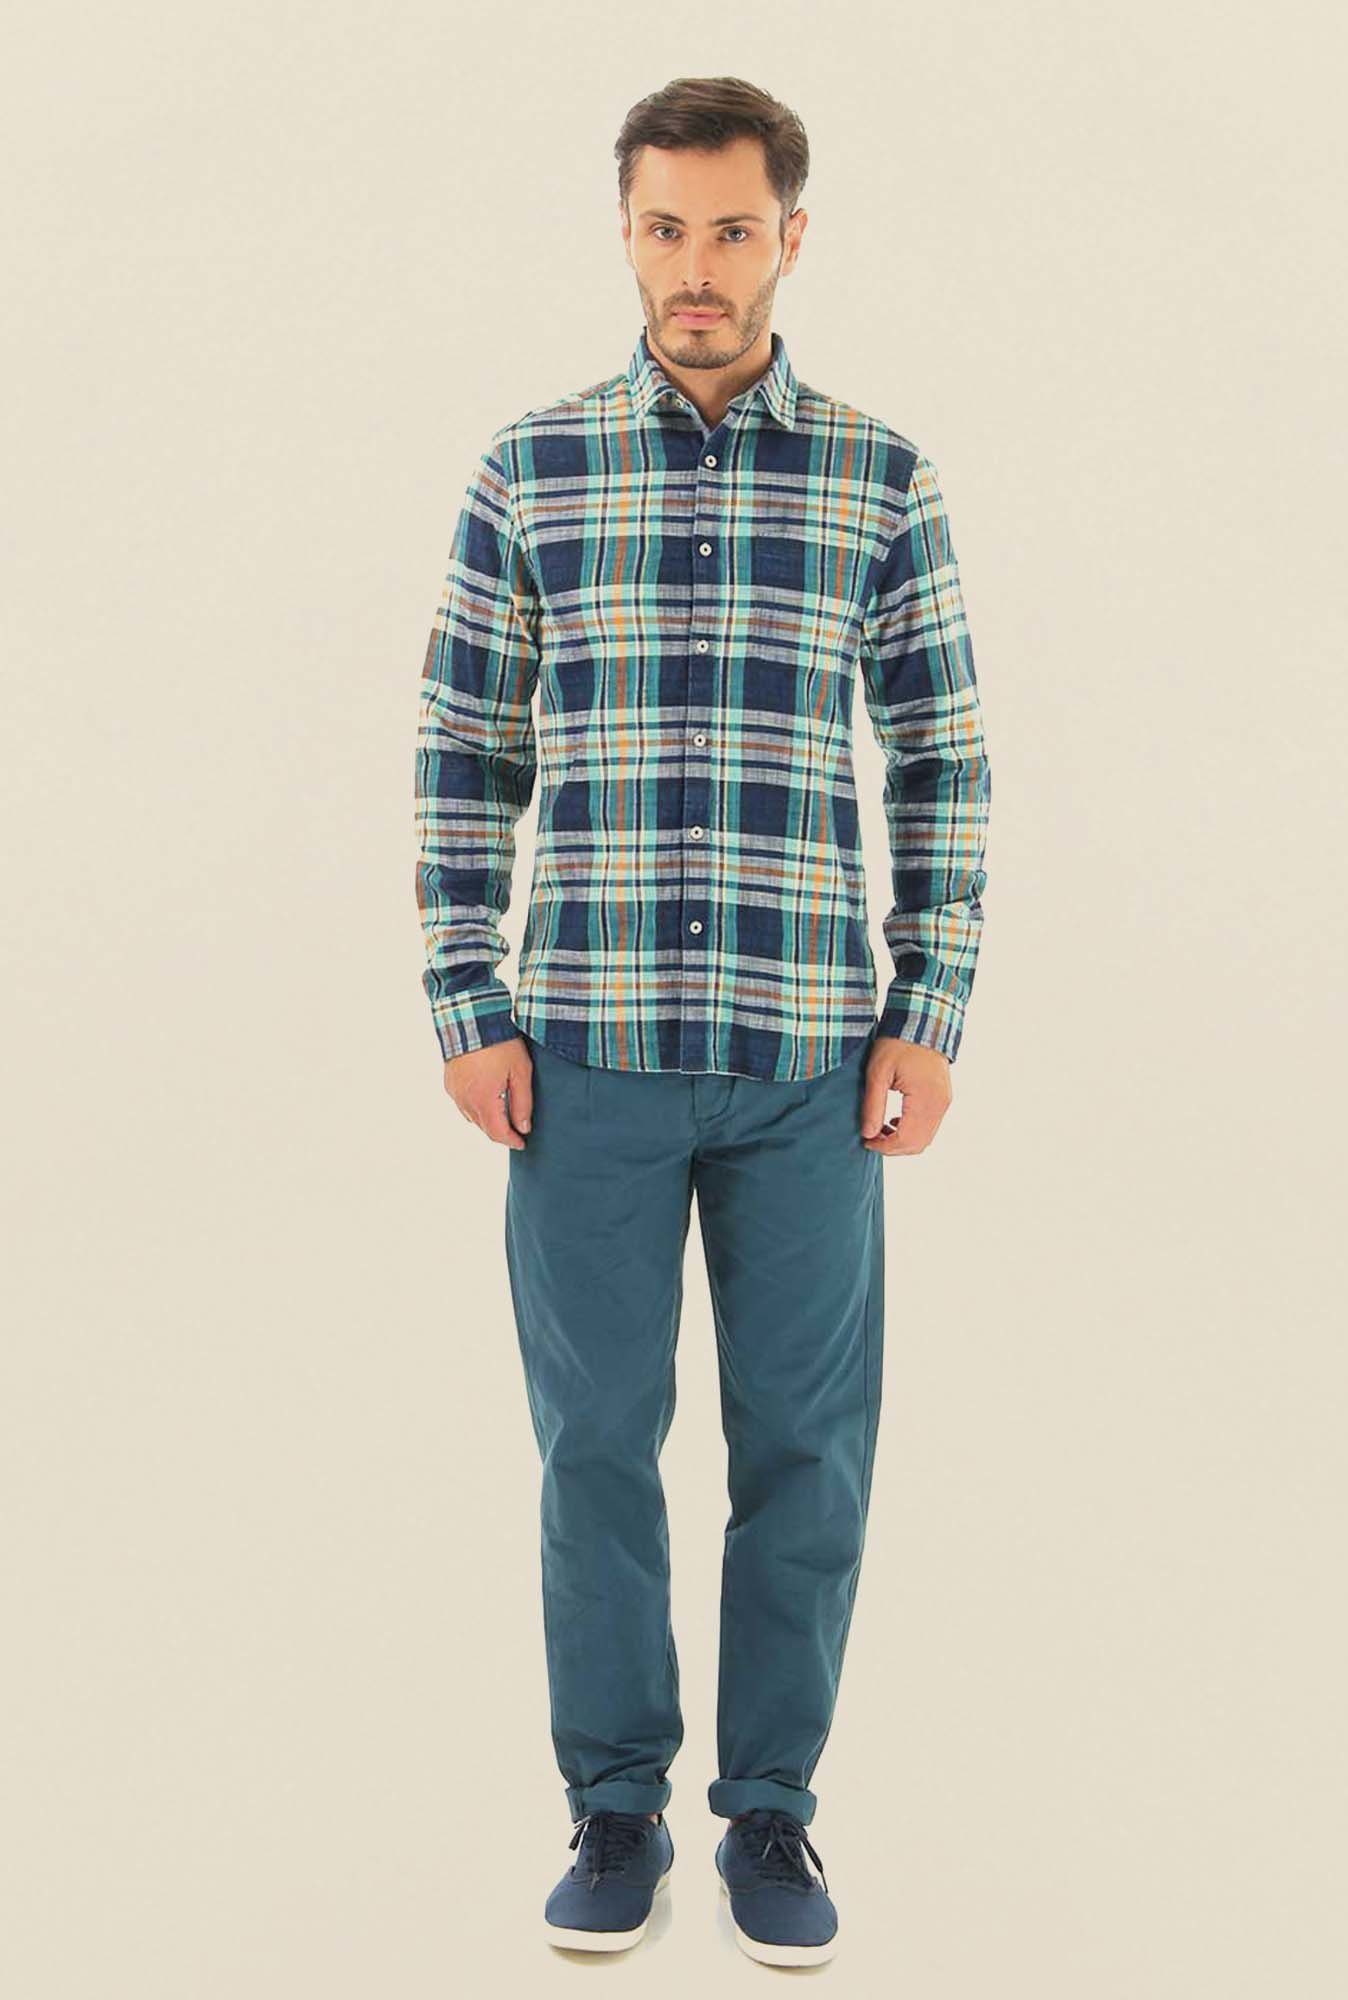 Jack & Jones Green Checks Cotton Shirt